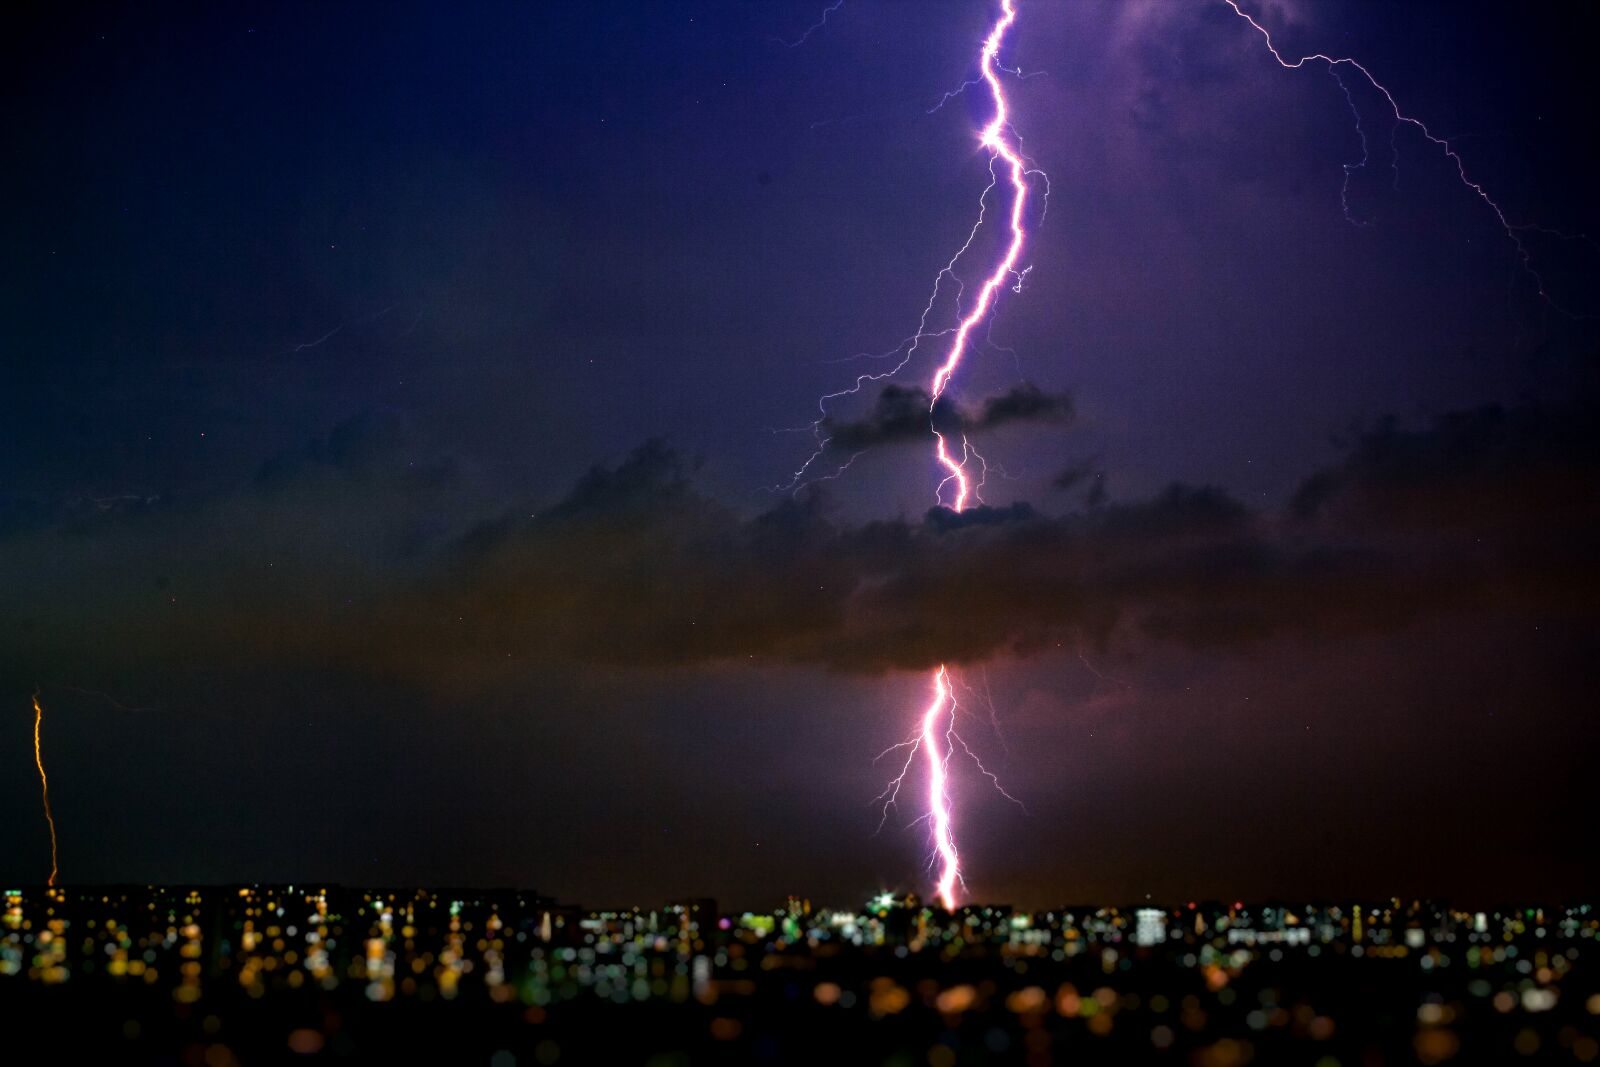 photography, of, lightning, during